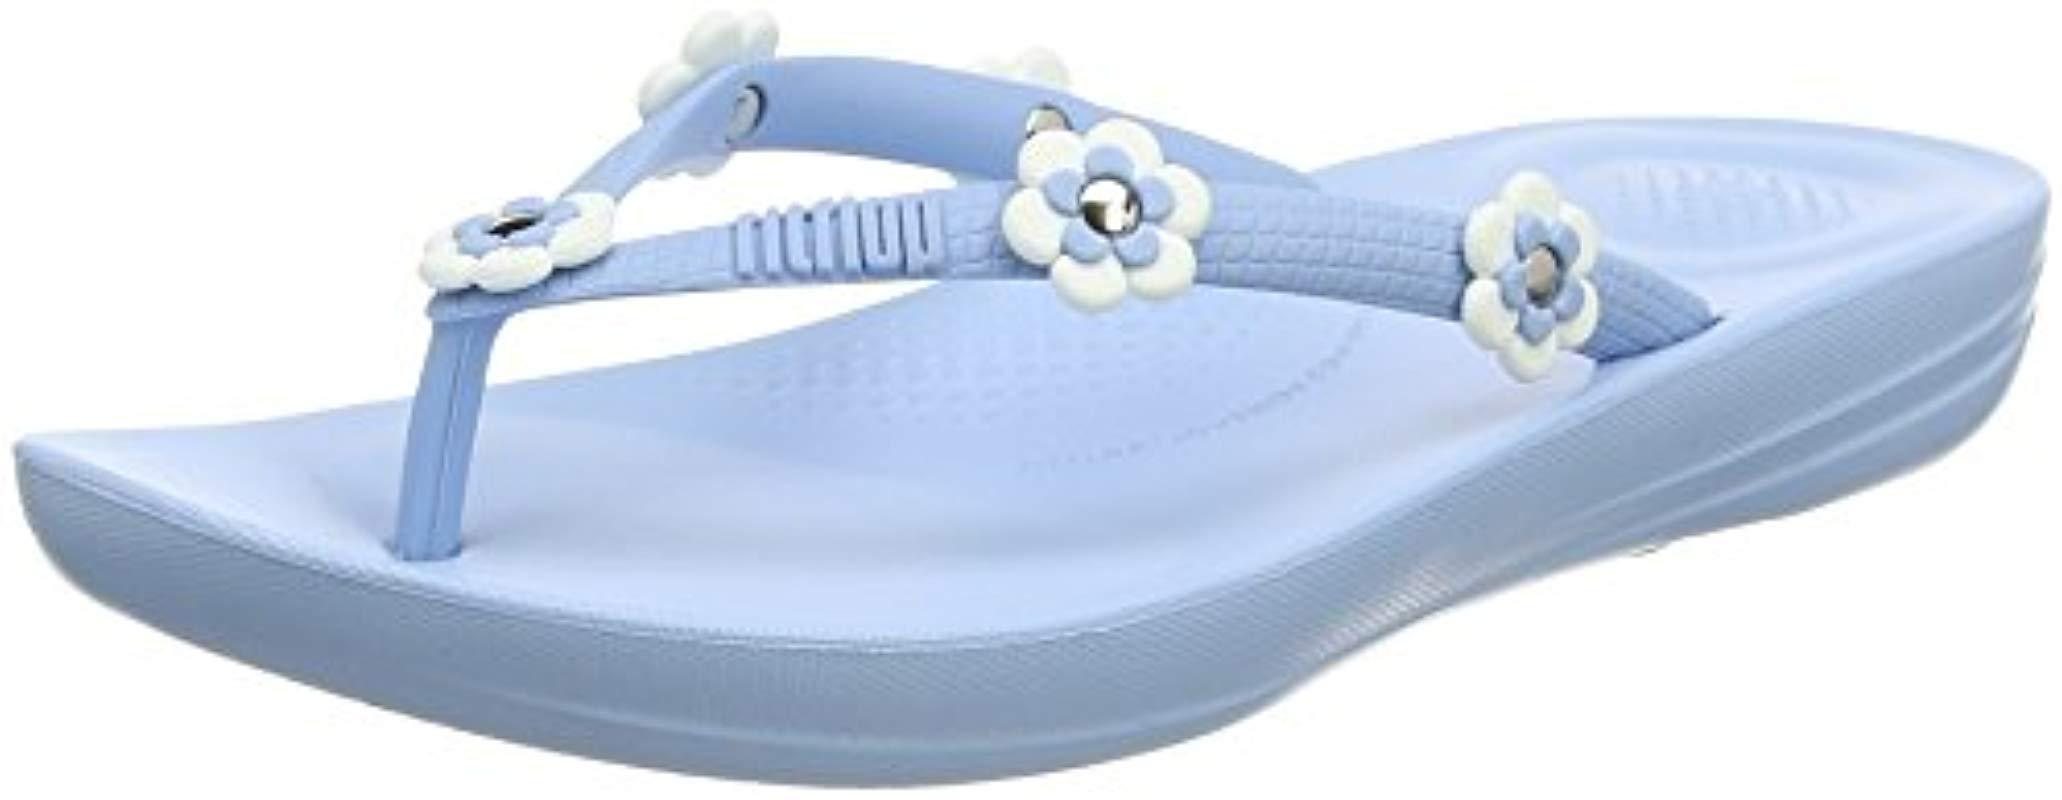 f7eb02125 Fitflop Iqushion Ergonomic Flip Flop Flower-stud in Blue - Lyst